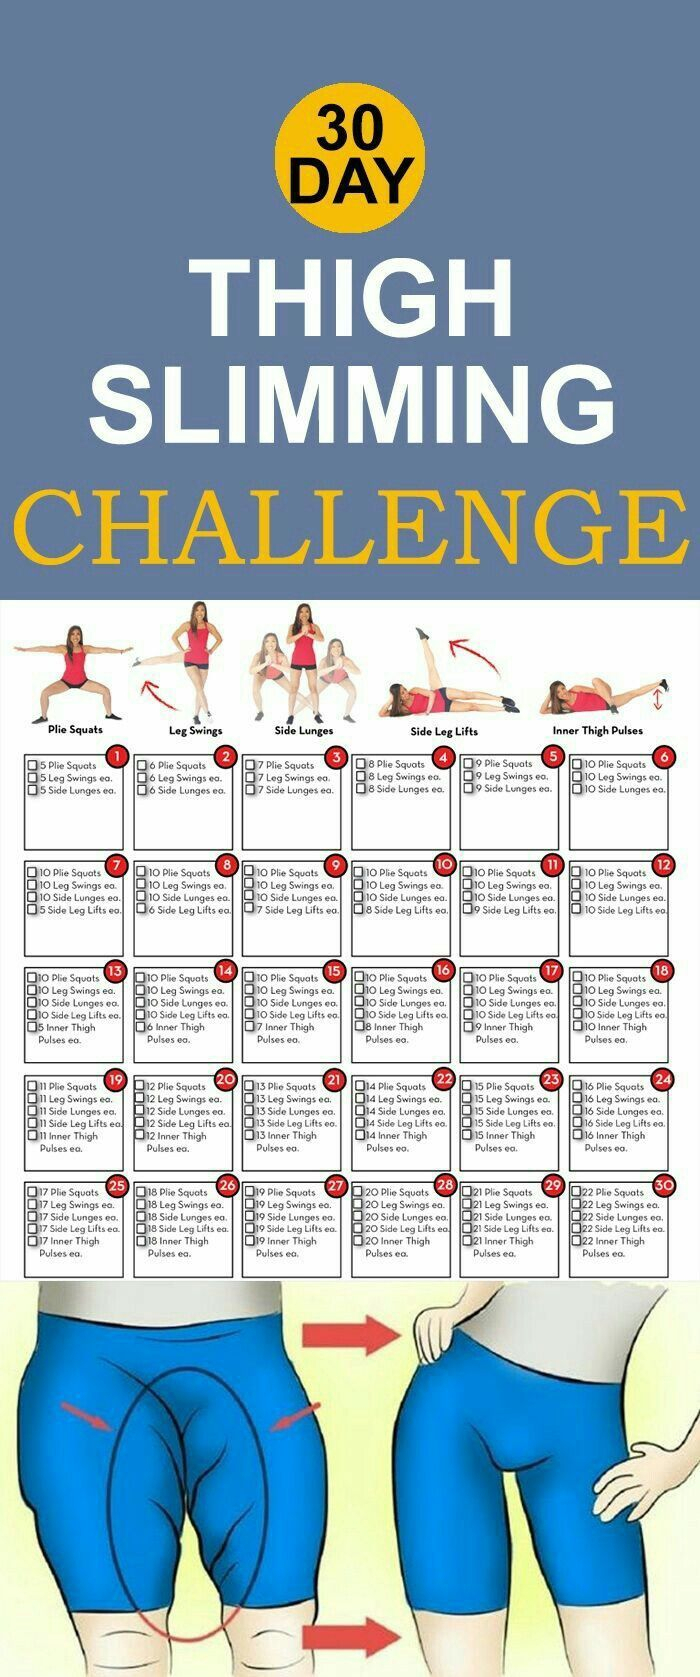 Thigh Slimming Challenge | Posted By: Newhowtolosebellyfat with 30 Day Inner Thigh Challenge